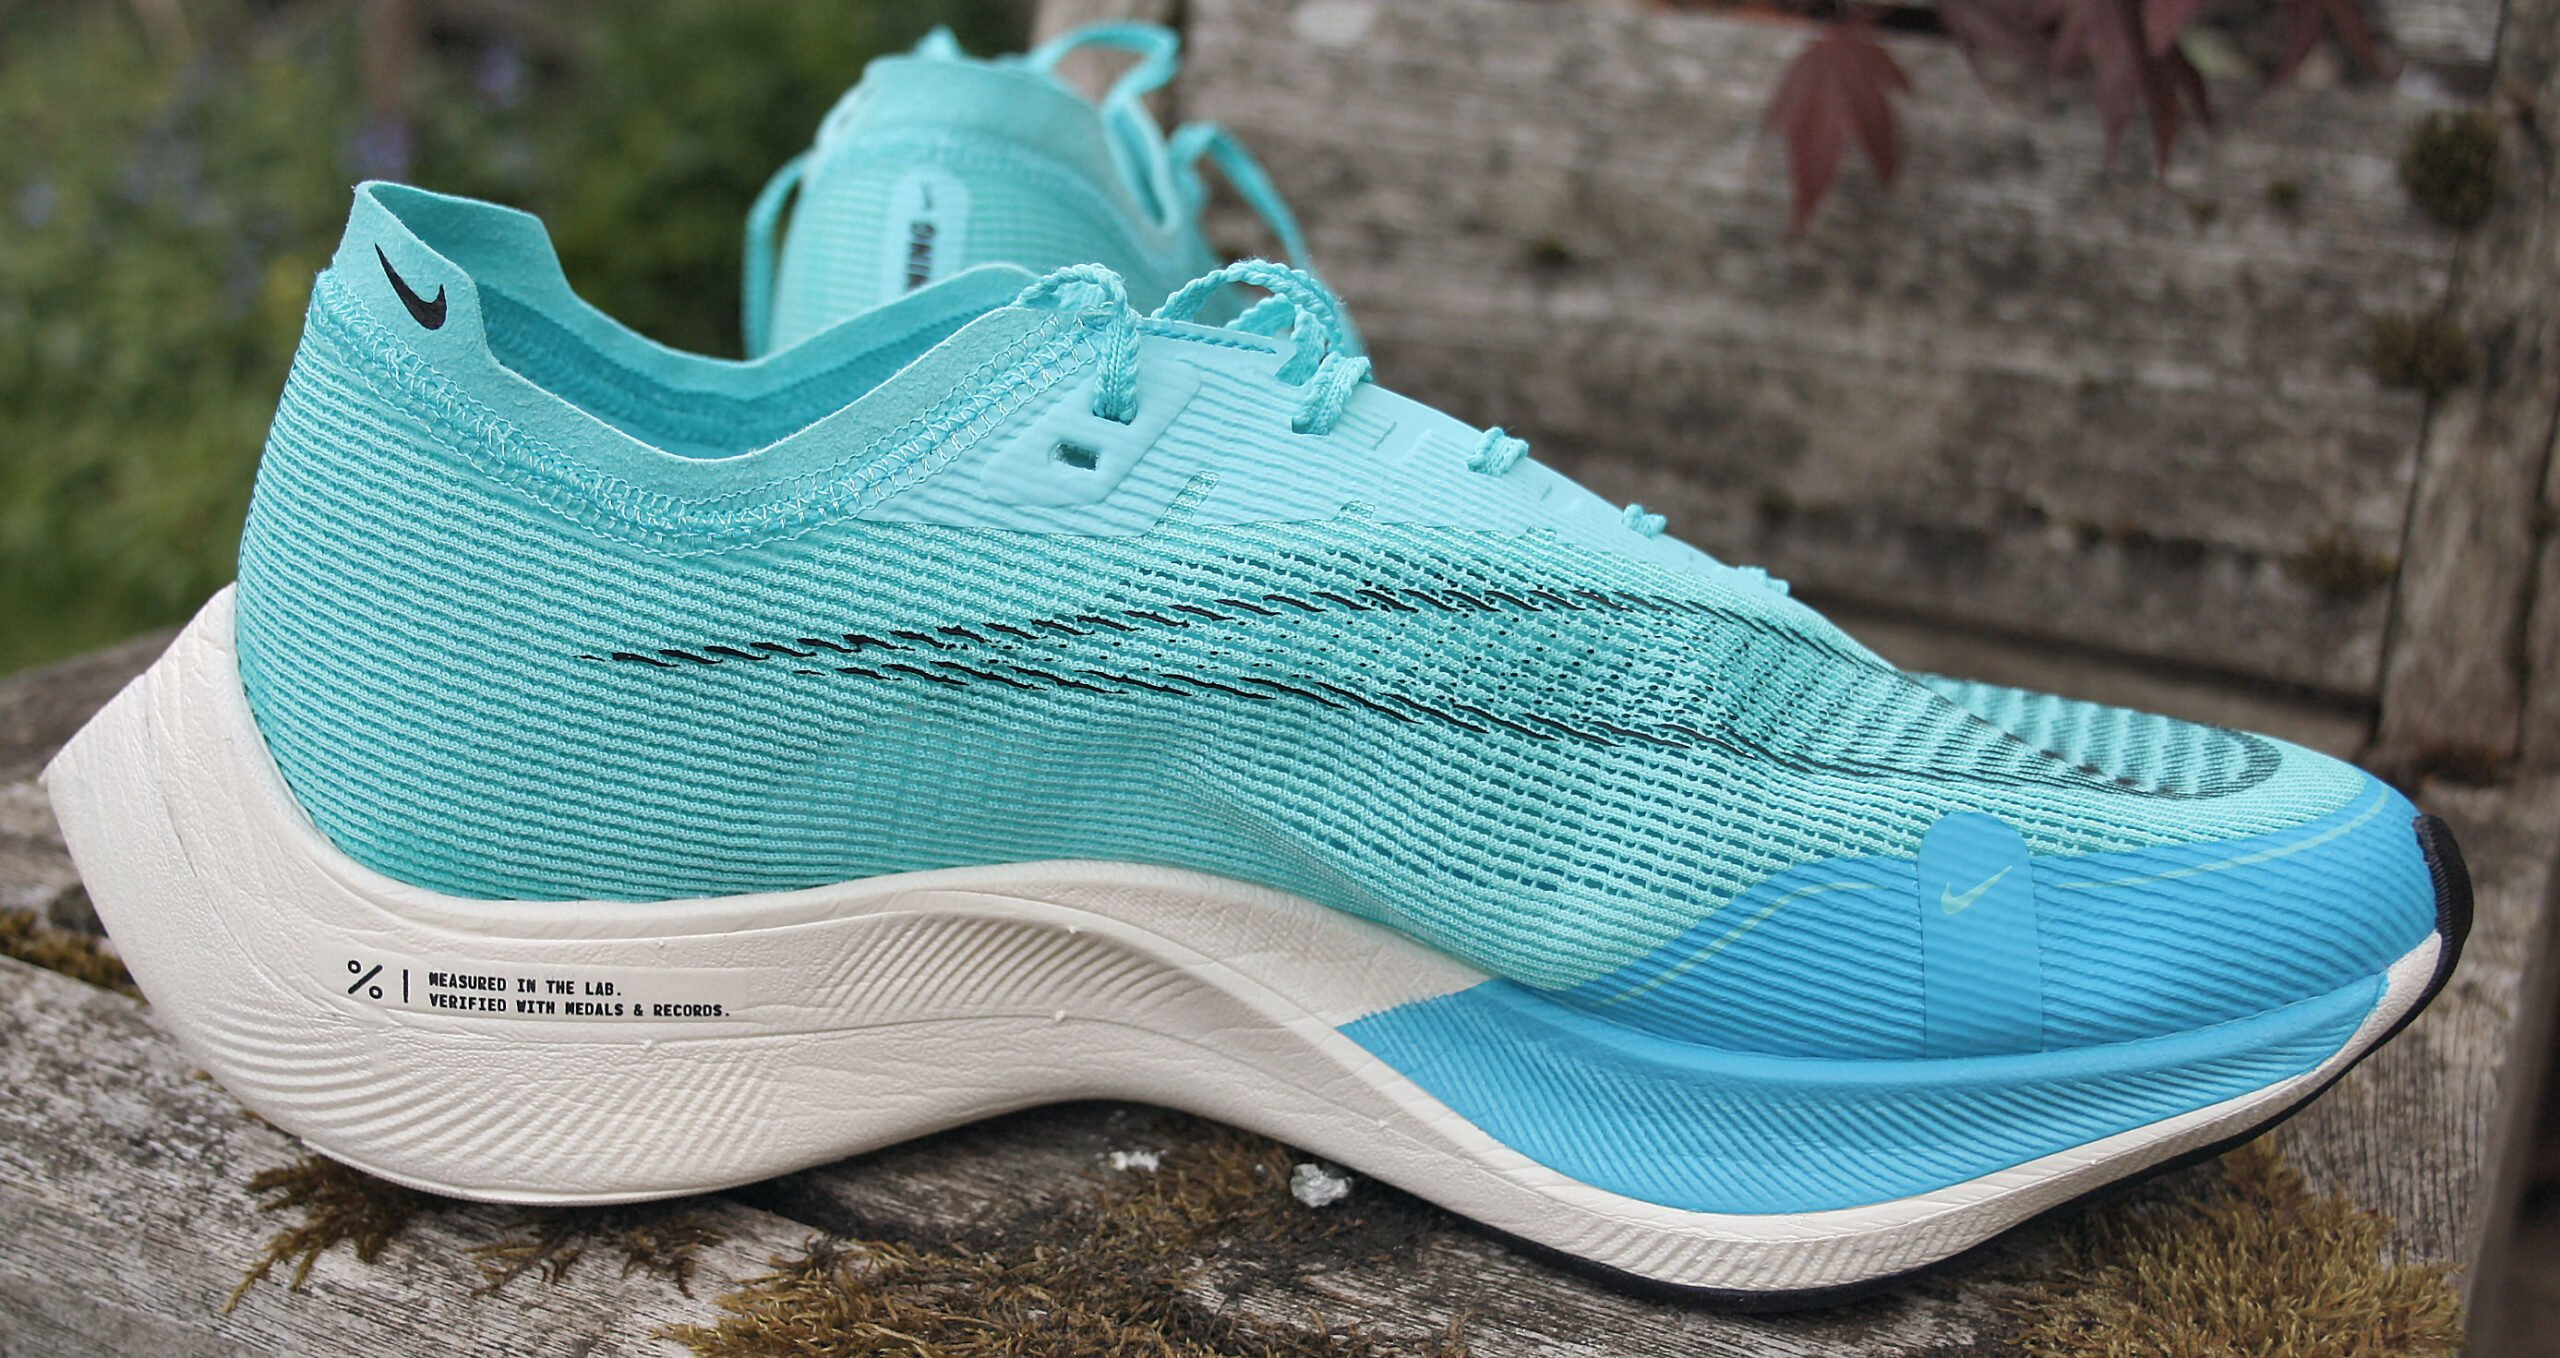 Side view of Nike ZoomX Vaporfly these are Next% 2 and covered in the Review